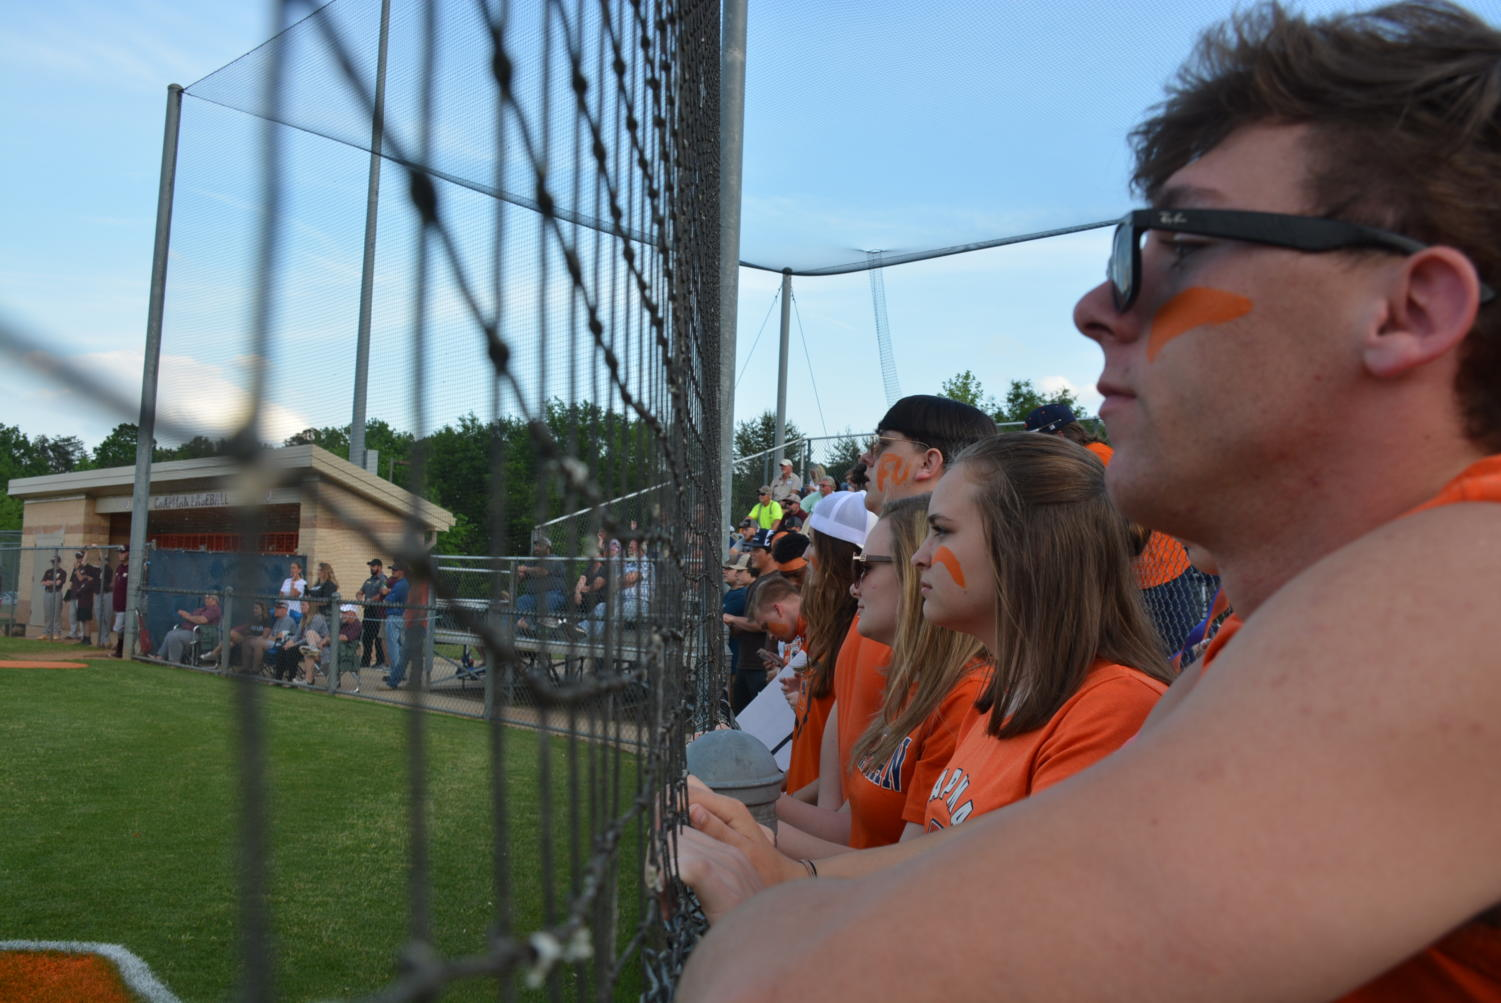 Students+intensely+watching+the+baseball+game+